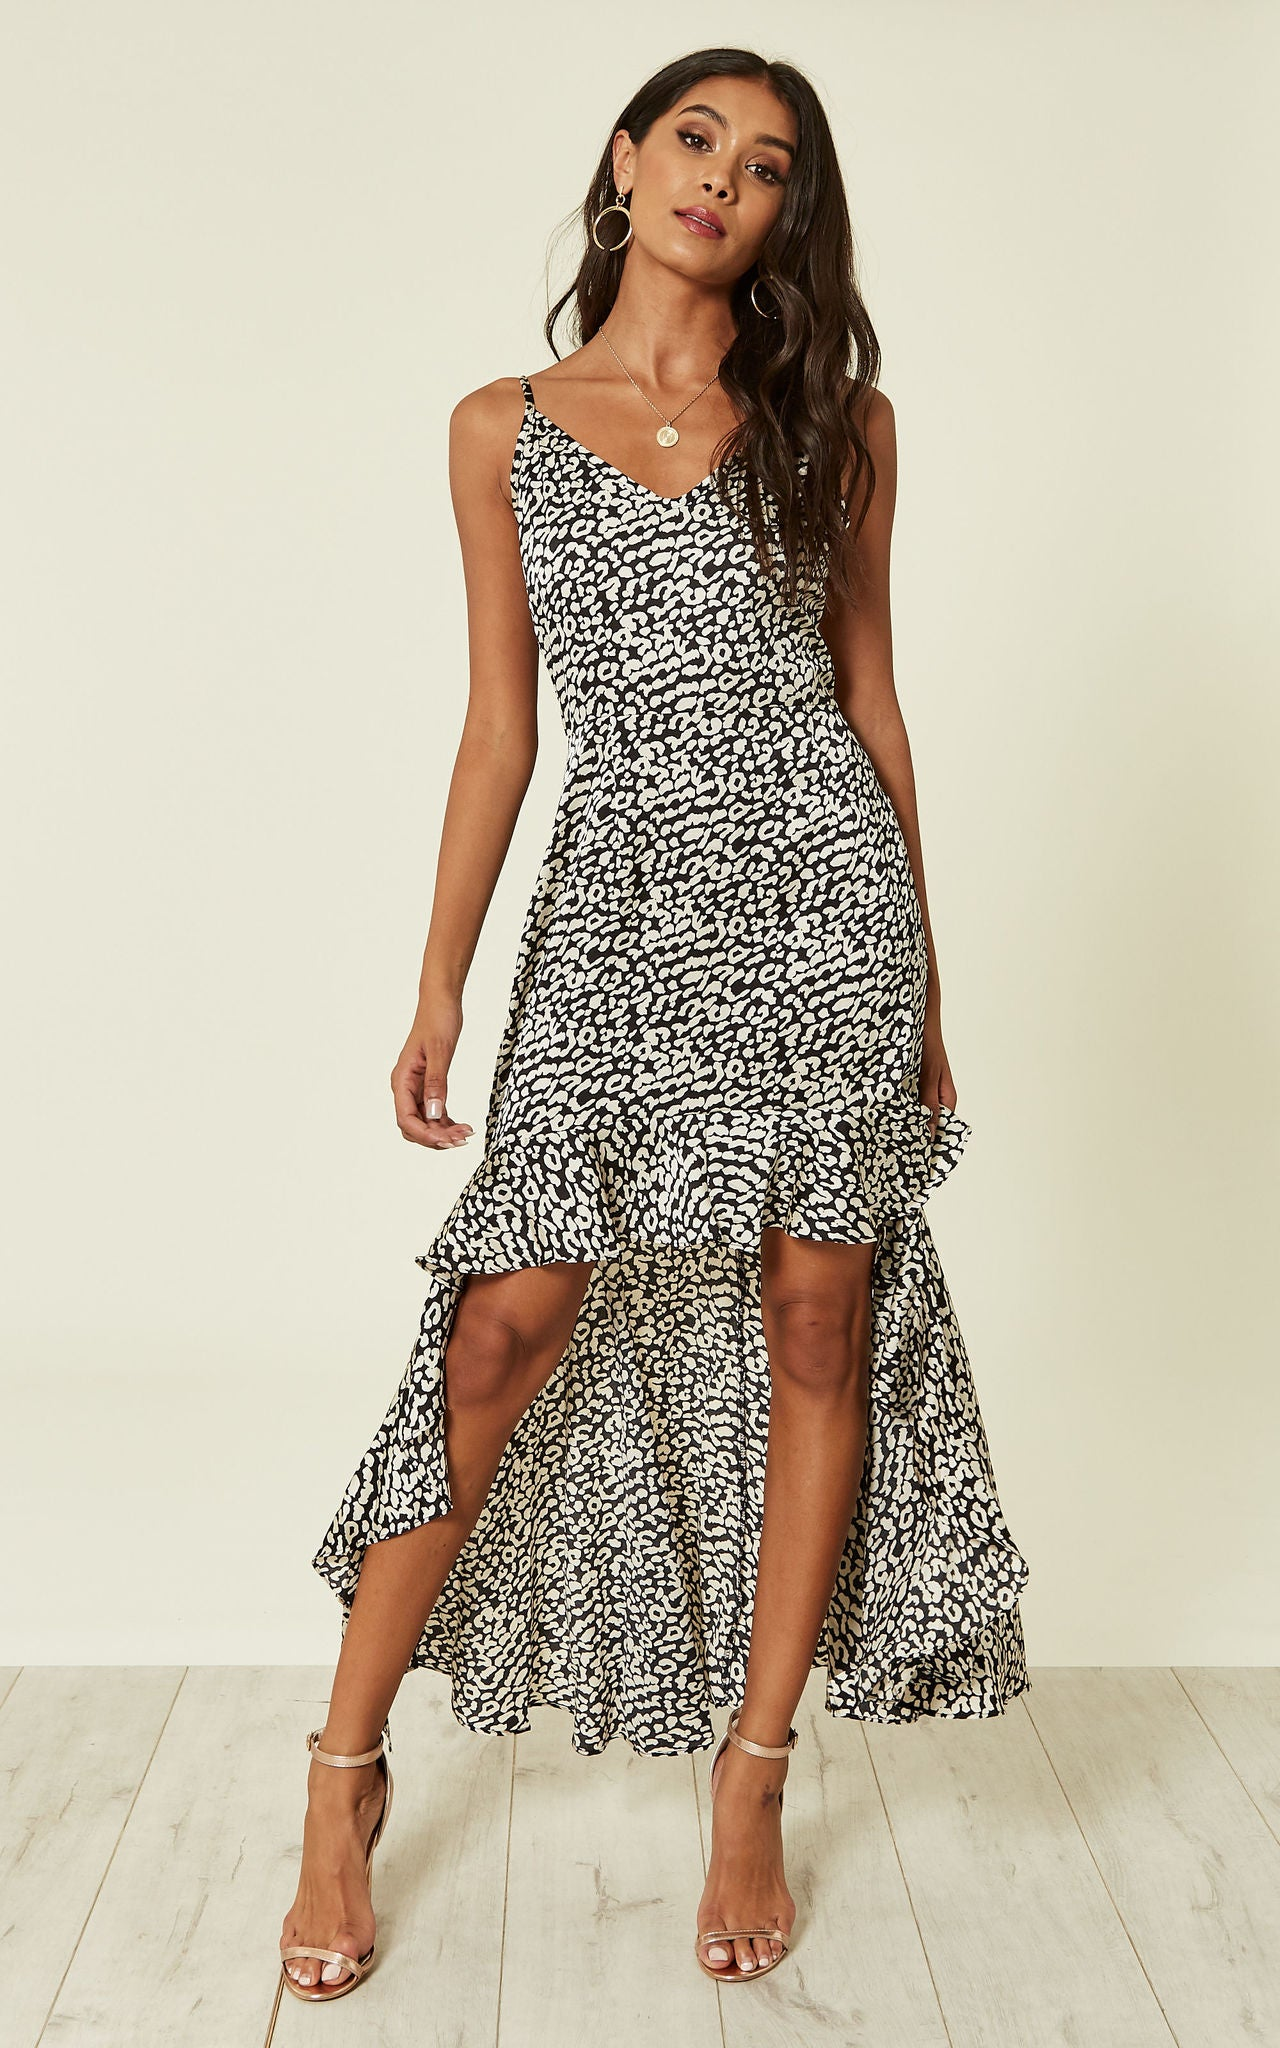 Small Leopard Print High Low Maxi Dress In Black And White